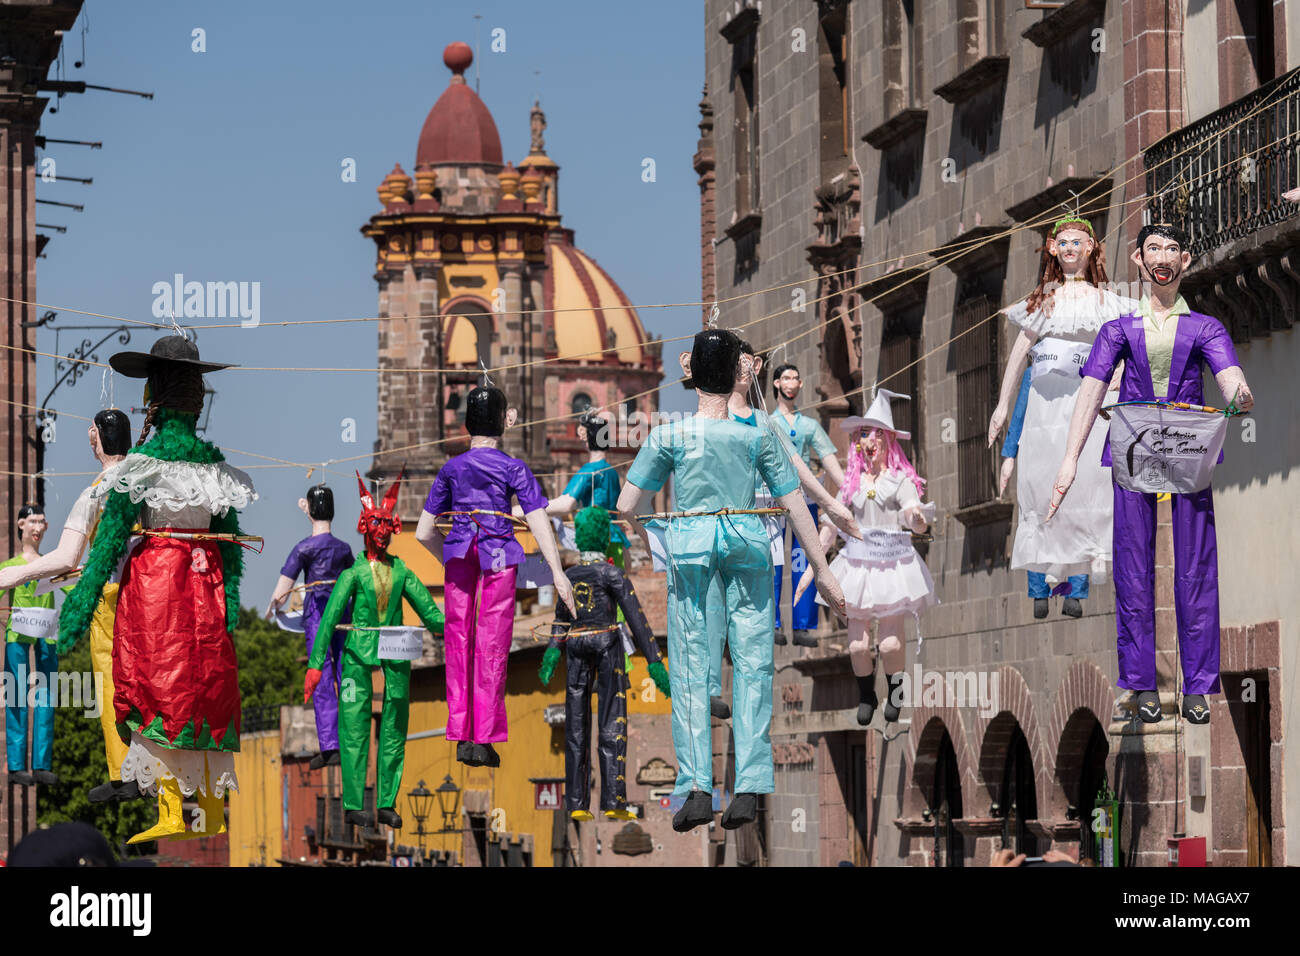 Paper doll effigies hang in the Plaza Allende in preparation for the Burning of Judas Easter-time ritual marking the end of Holy Week April 1, 2018 in San Miguel de Allende, Mexico. - Stock Image